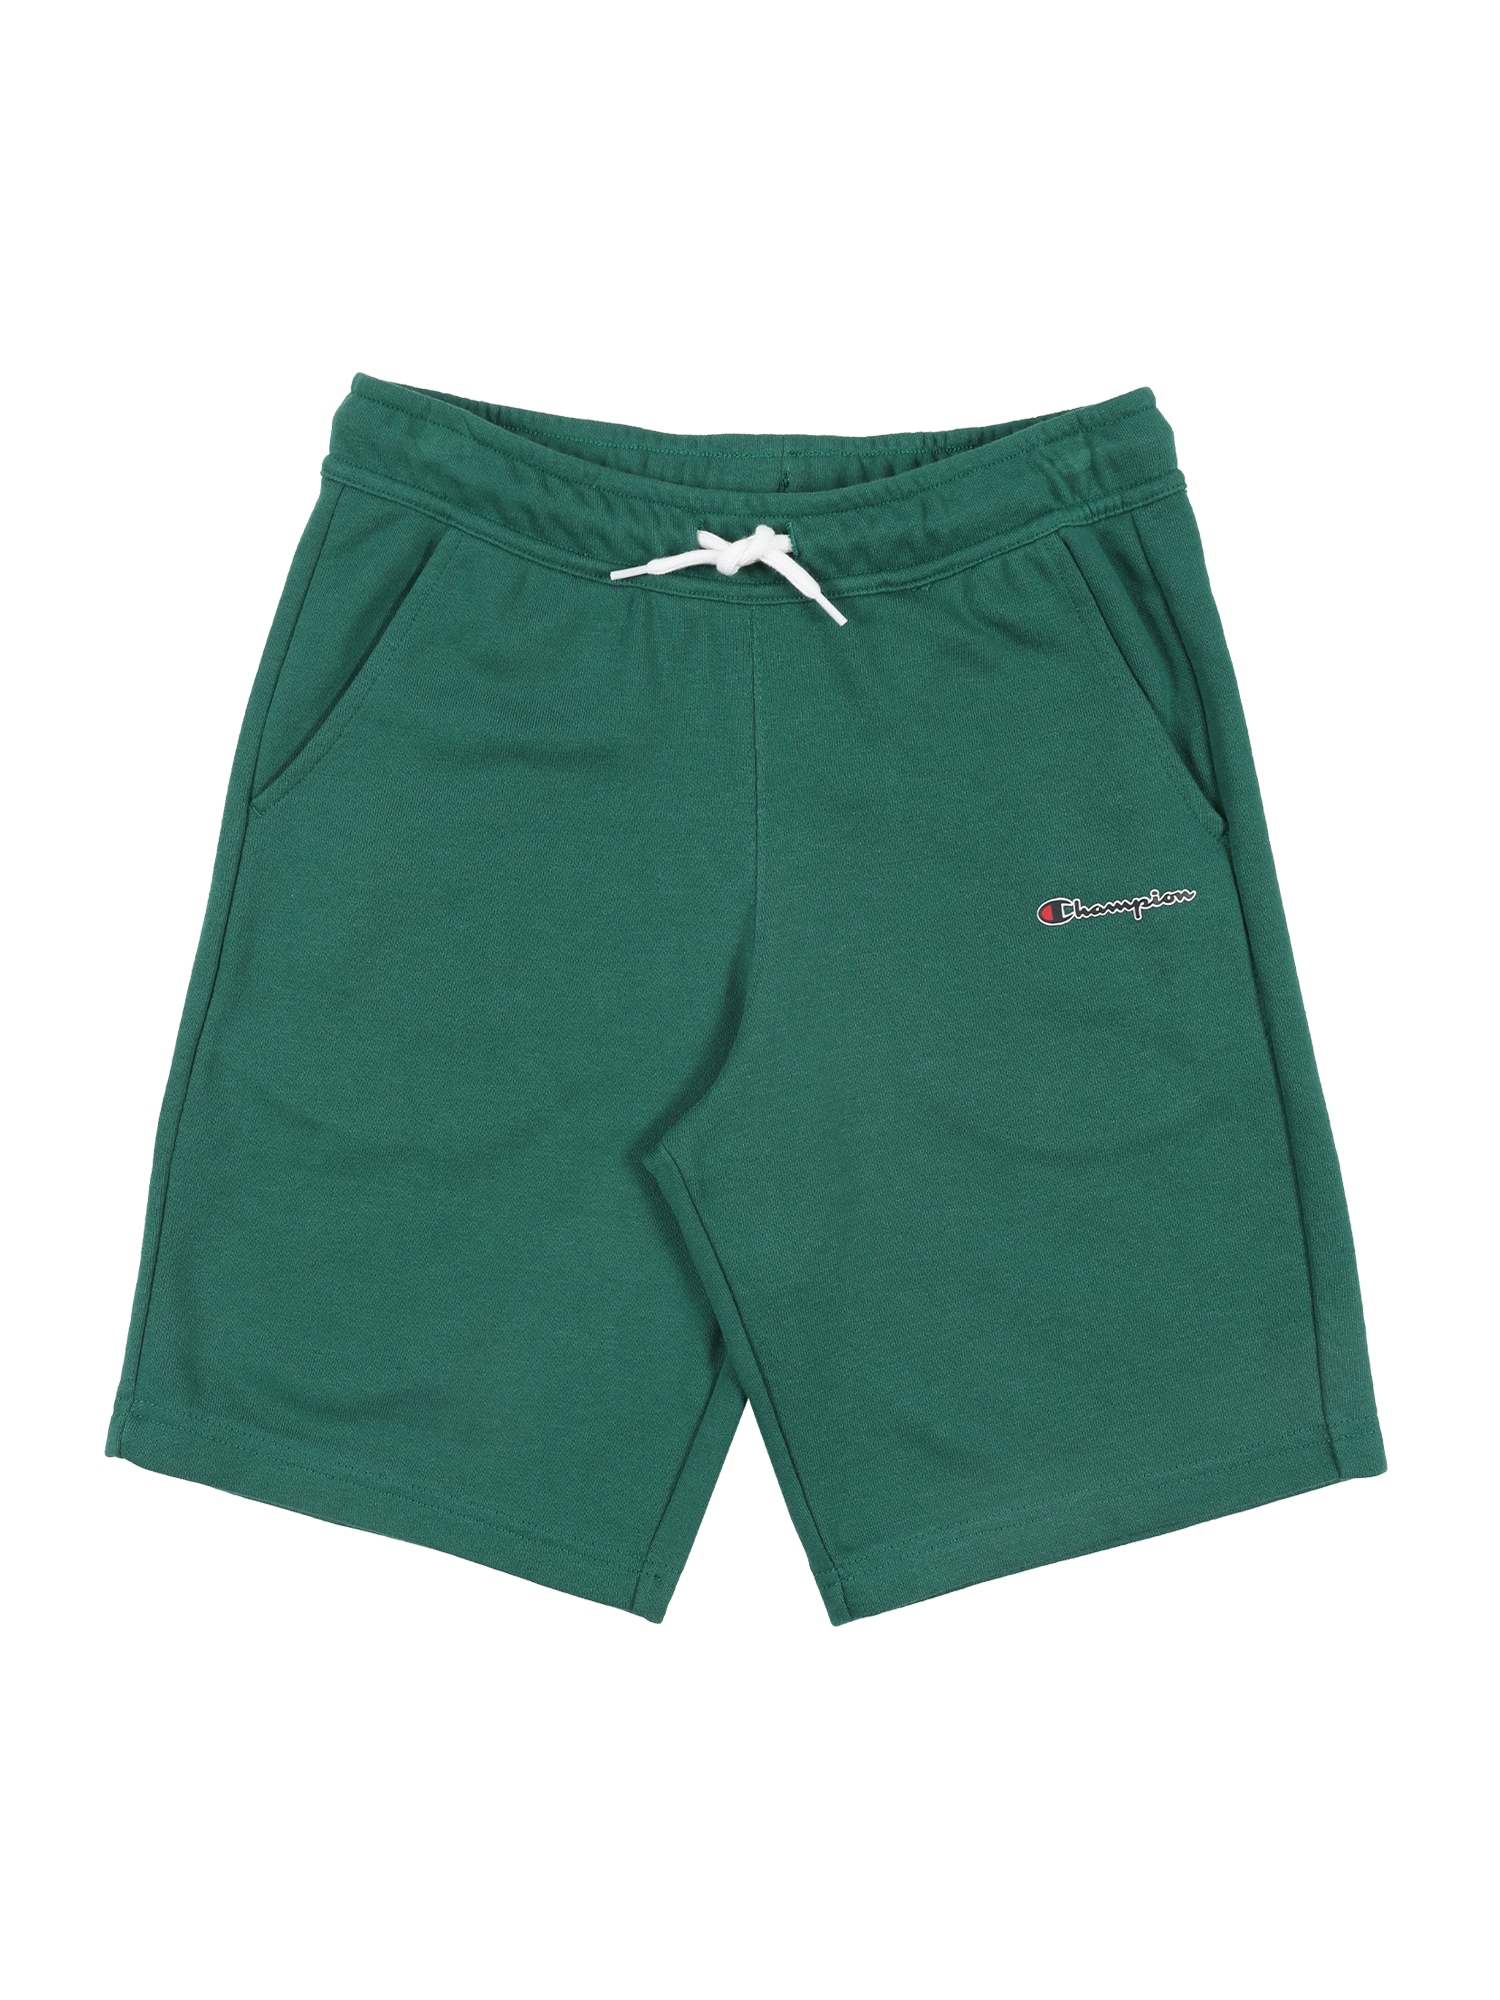 Champion Authentic Athletic Apparel Kelnės 'Bermuda' žalia / balta